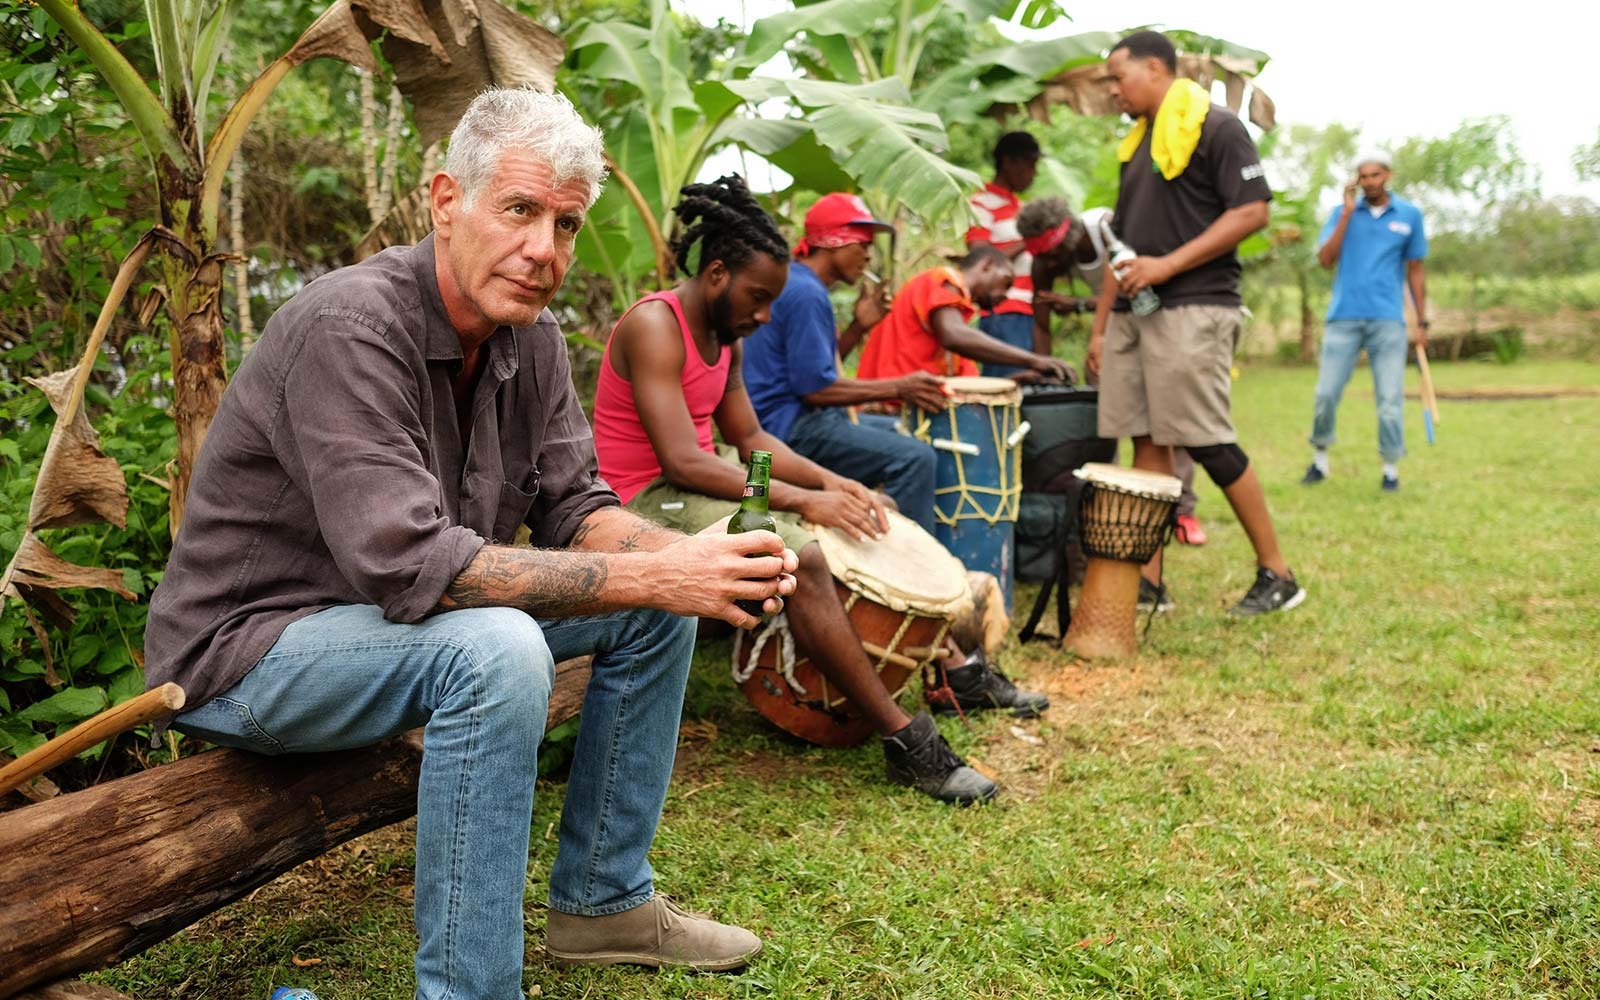 Anthony Bourdain Explores Trinidad's Food, History, and Culture